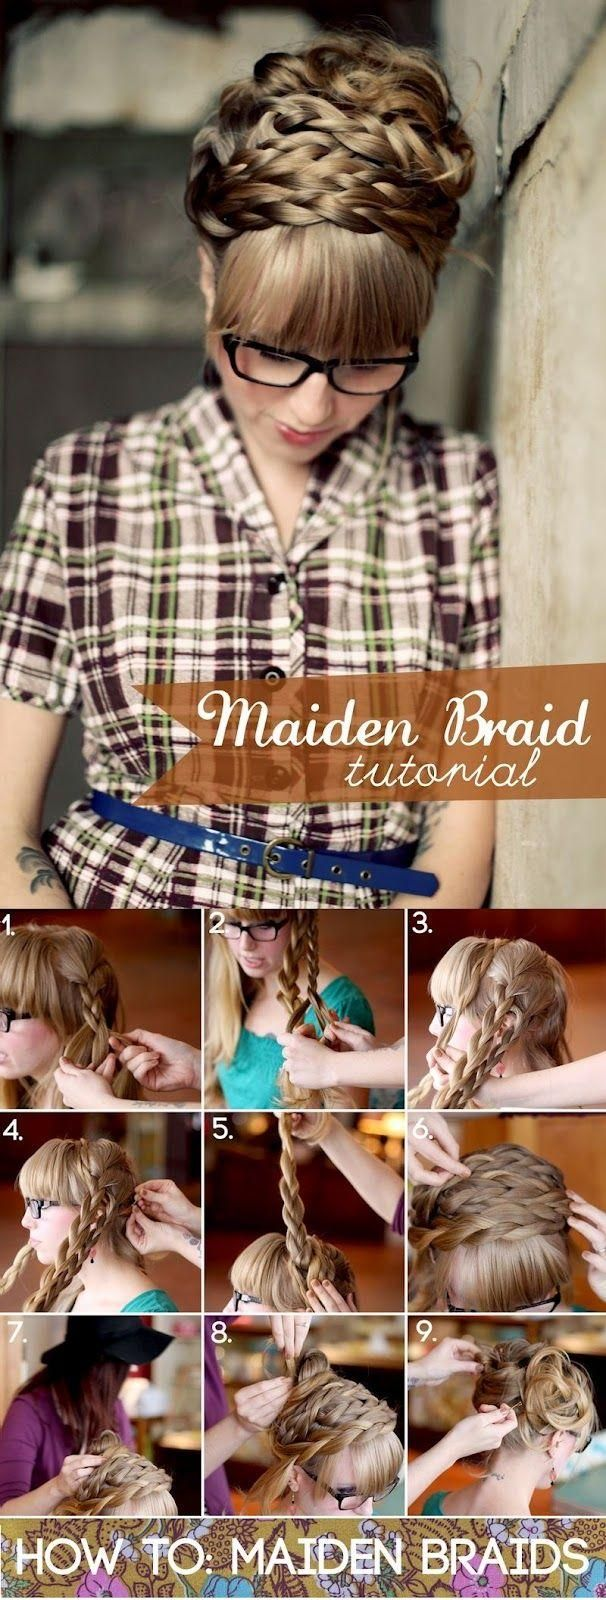 How to: Maiden Braids #braids #hair #tutorial........  REGISTER FOR THE RMR4 INTERNATIONAL.INFO PRODUCT LINE SHOWCASE WEBINAR BROADCAST at: www.rmr4international.info/500_tasty_diabetic_recipes.htm    .......      Don't miss our webinar!❤........